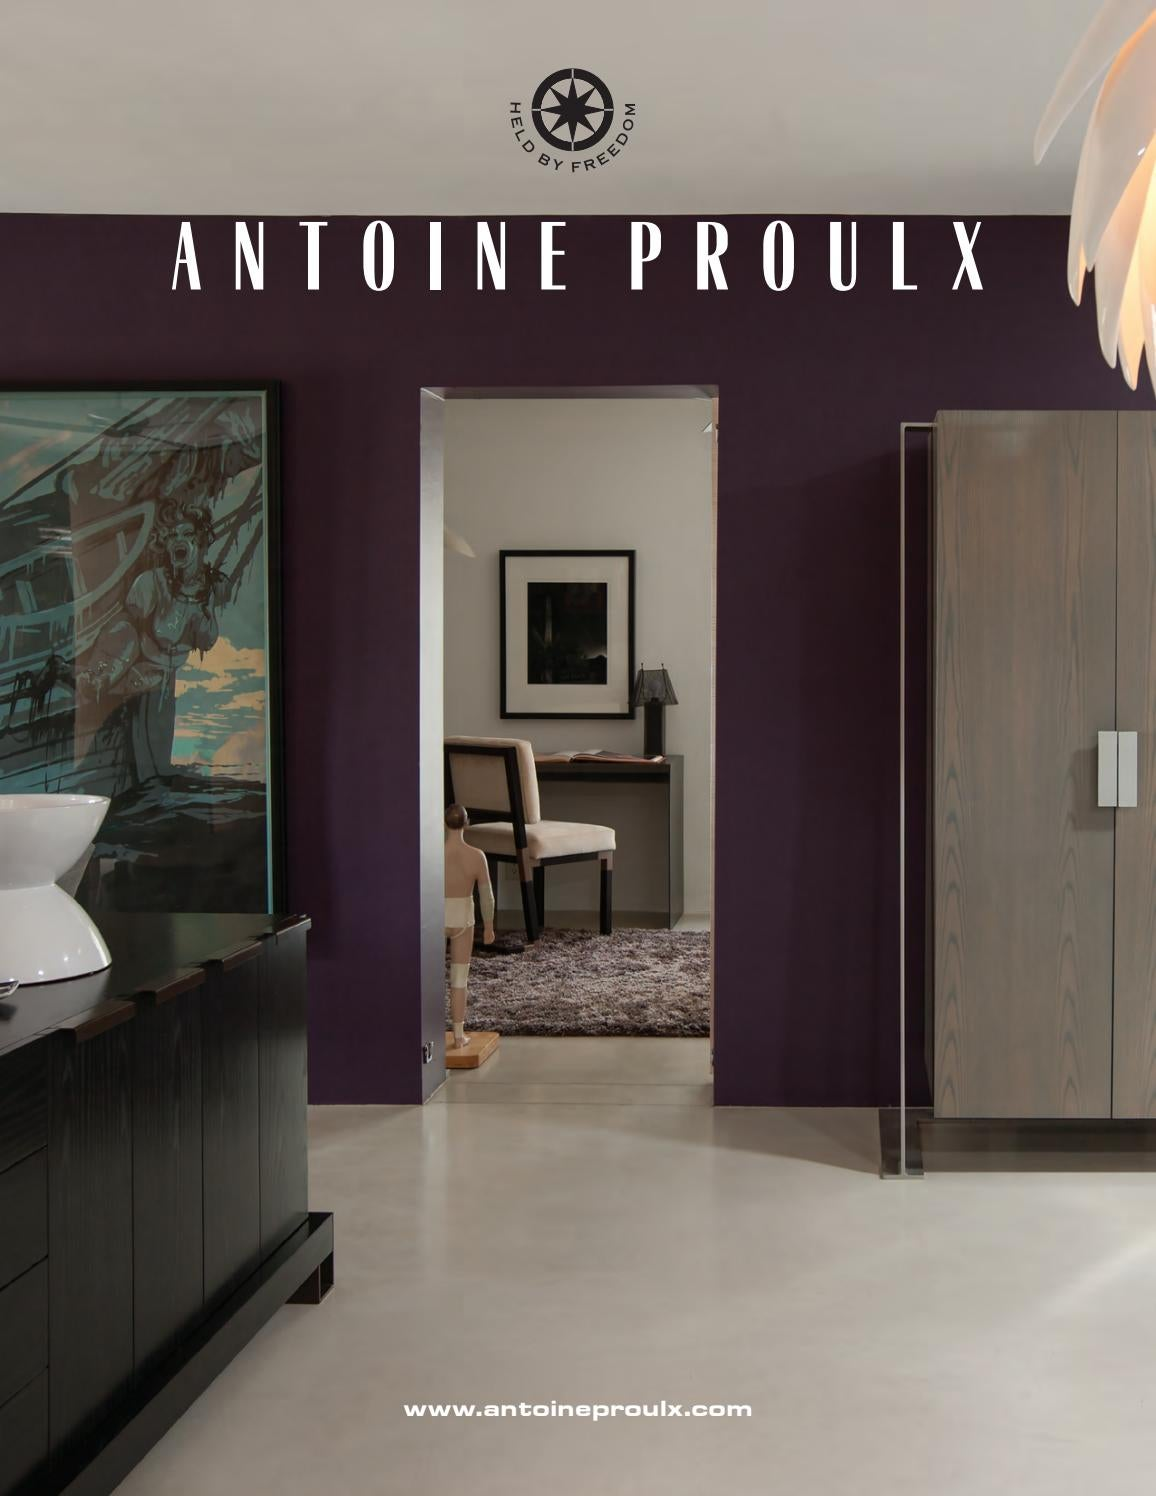 An Introduction To The Antoine Proulx Collection By